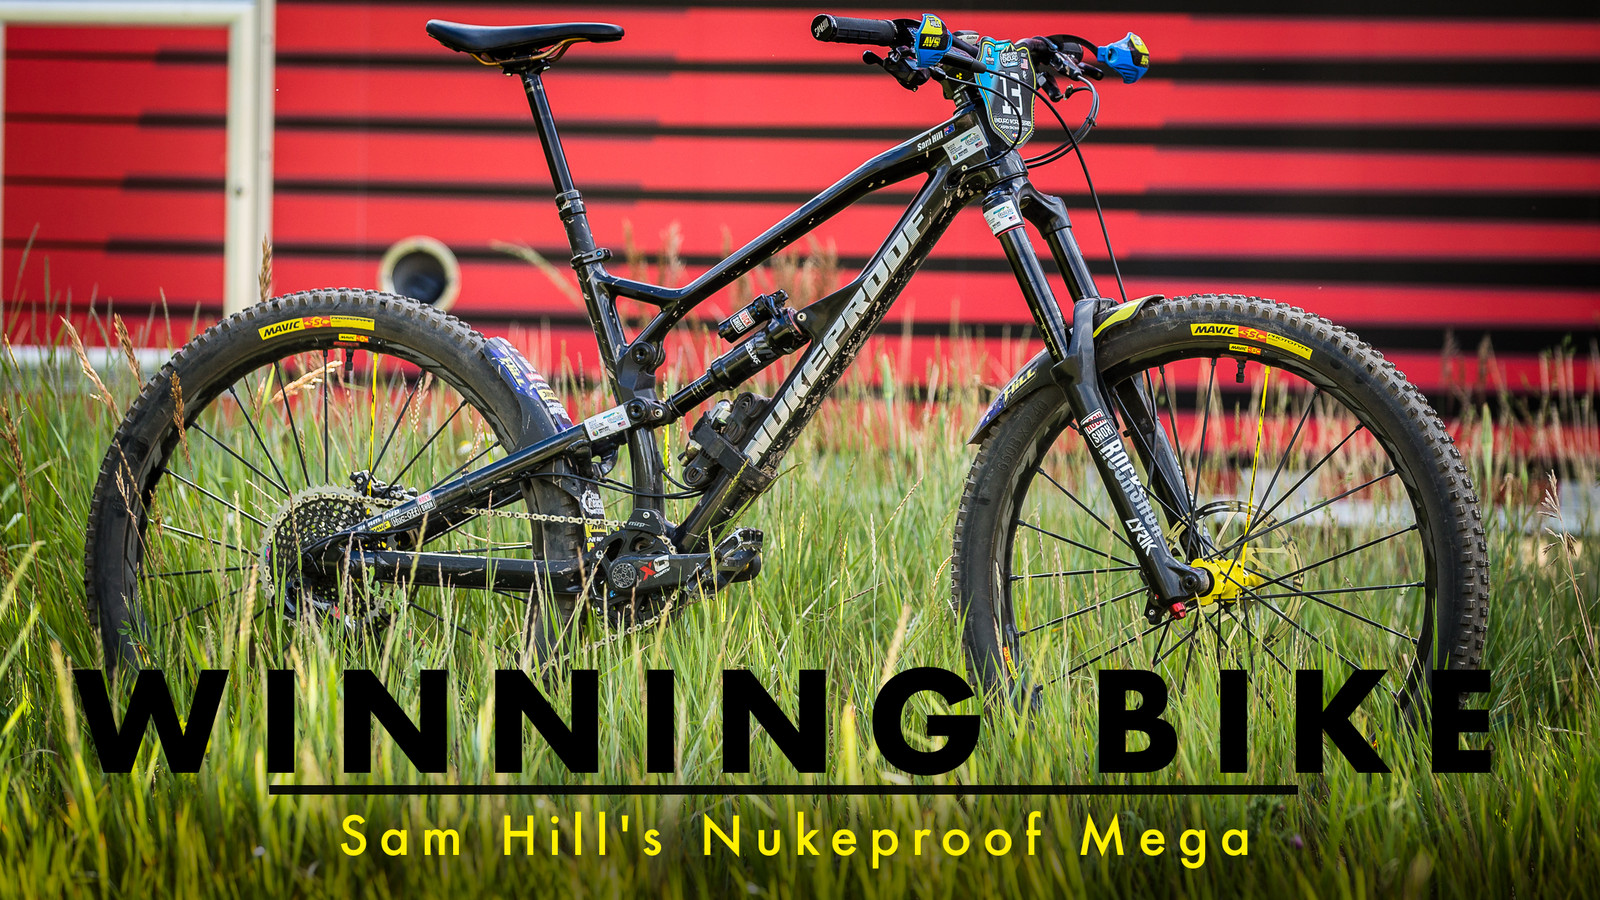 WINNING BIKE - Sam Hill's Prototype Nukeproof Mega